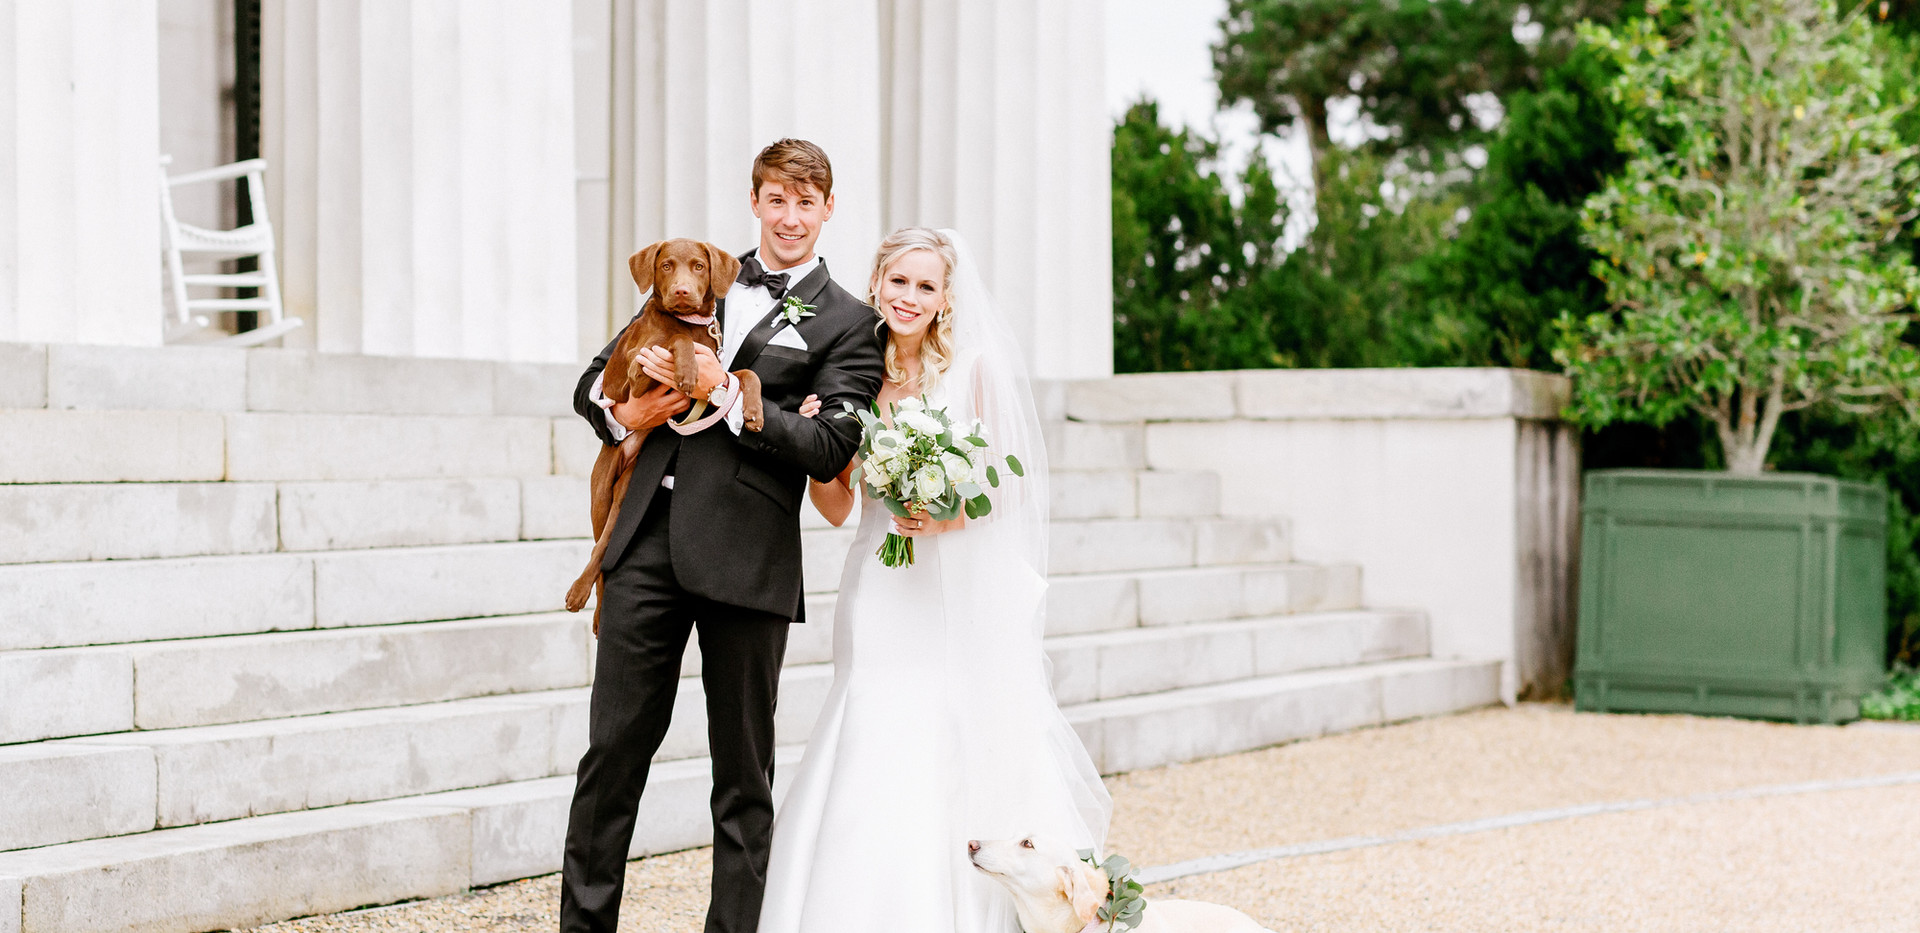 Caroline and Carter - Wedding - 2019-192